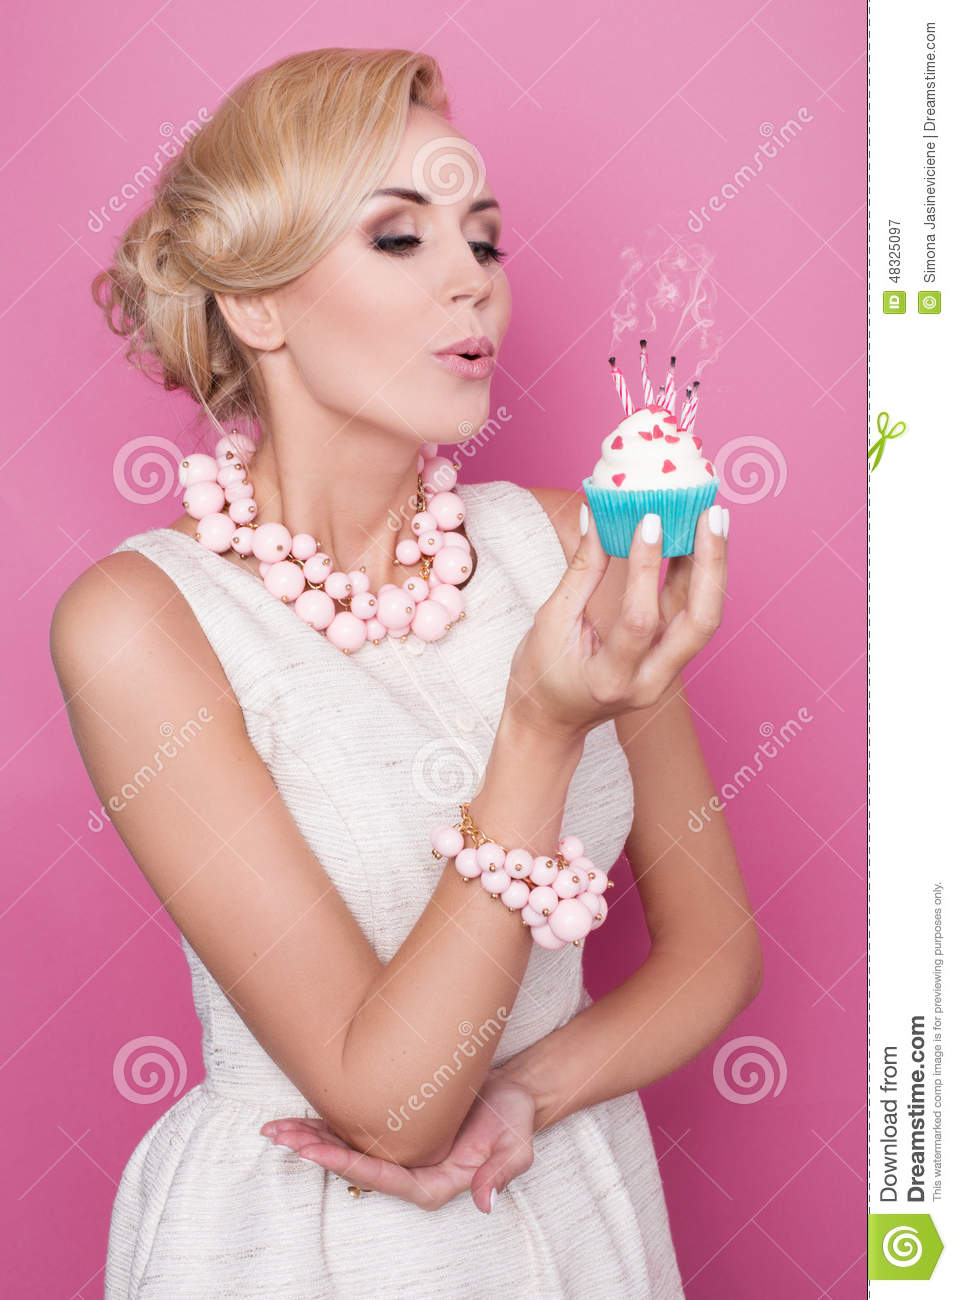 Elegant Woman Blowing Out Candles On Birthday Cake Stock